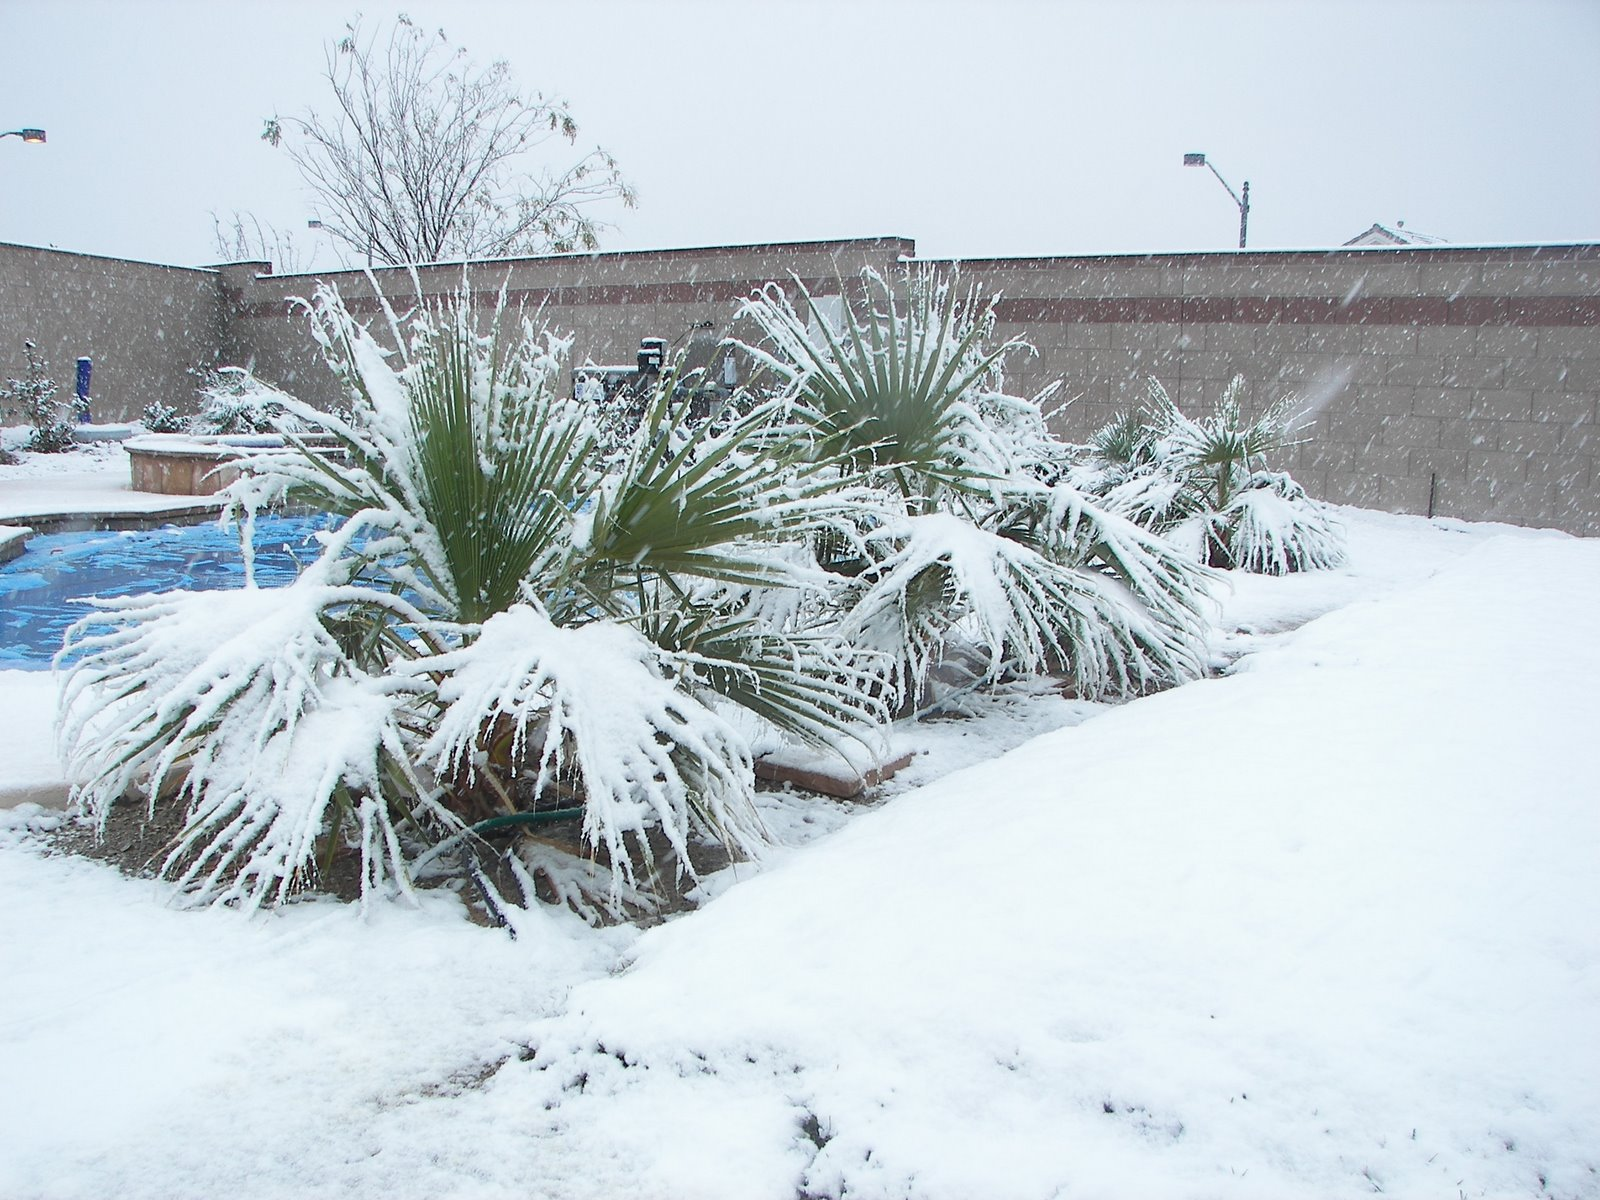 http://www.city-data.com/forum/attachments/las-vegas/64887d1278235091-does-las-vegas-ever-get-severe-snow.jpg